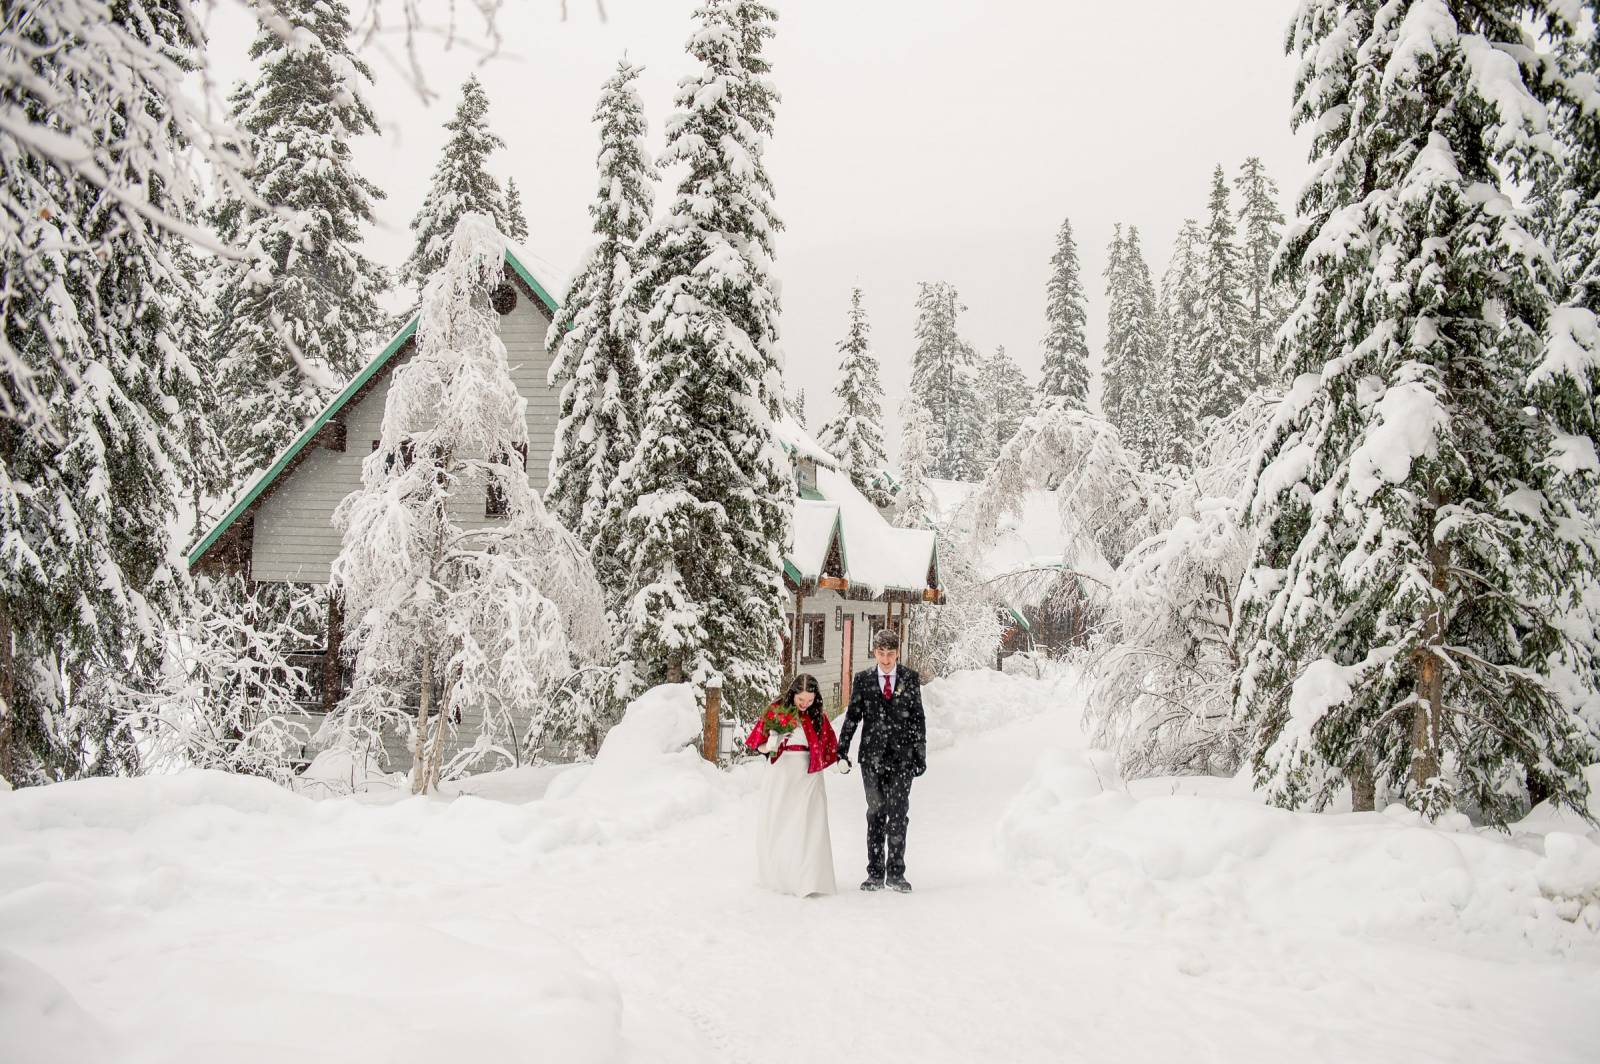 Emerald Lake Lodge Has An Amazing Elopement Package That Includes All You Need For Your Wedding And A Stay In Own Cabin